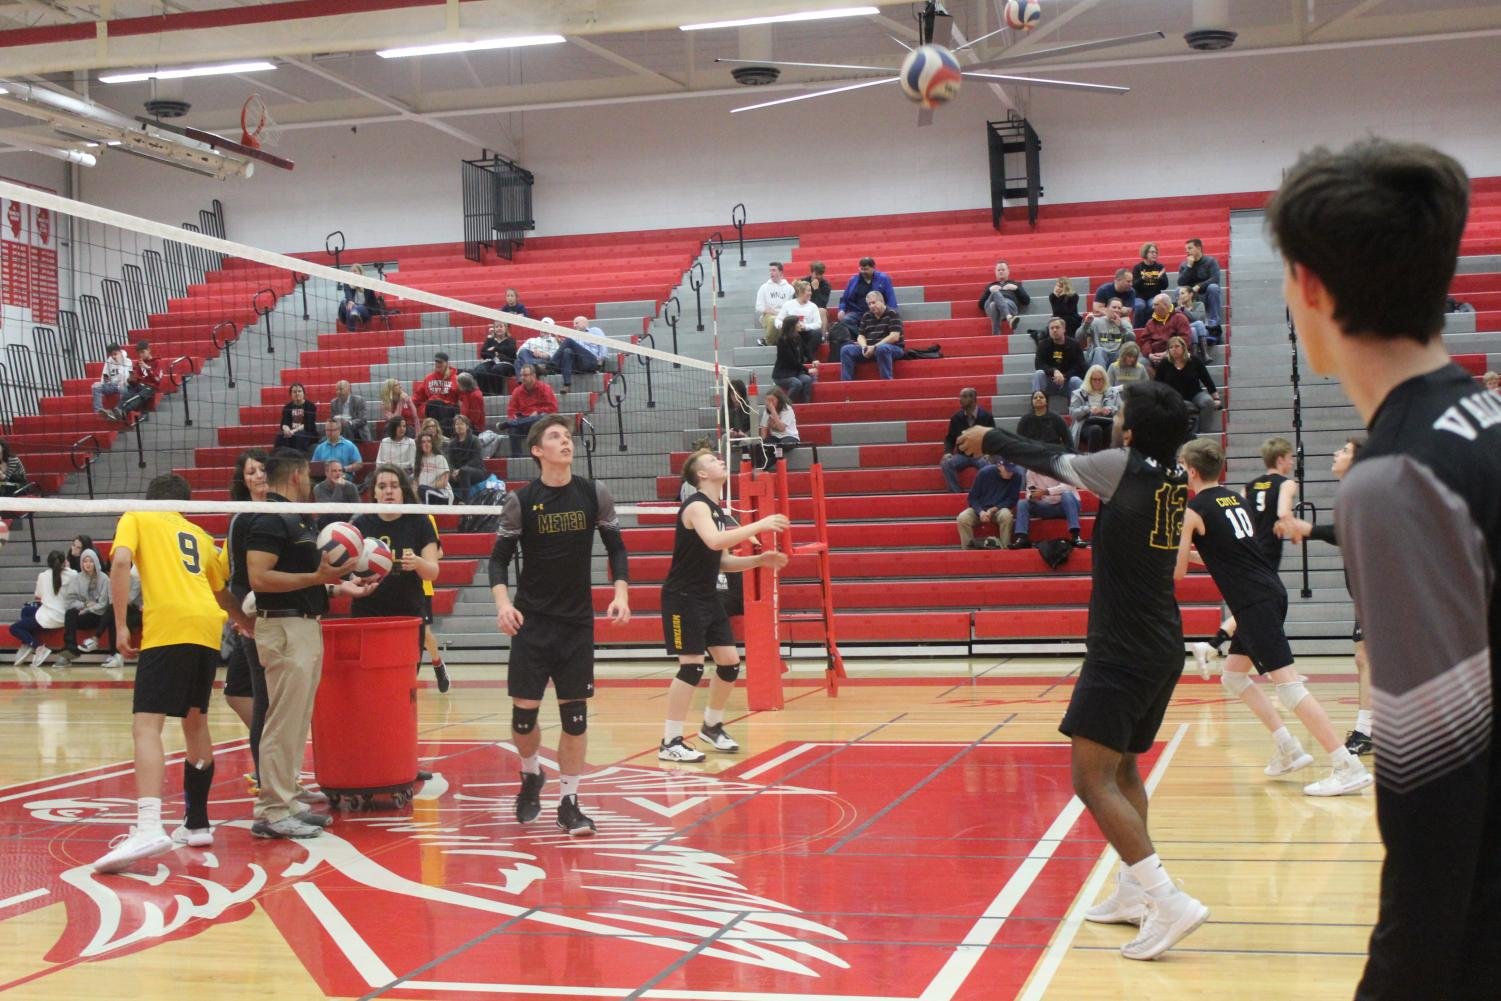 The Mustangs warming up before their match against conference rival Naperville Central.